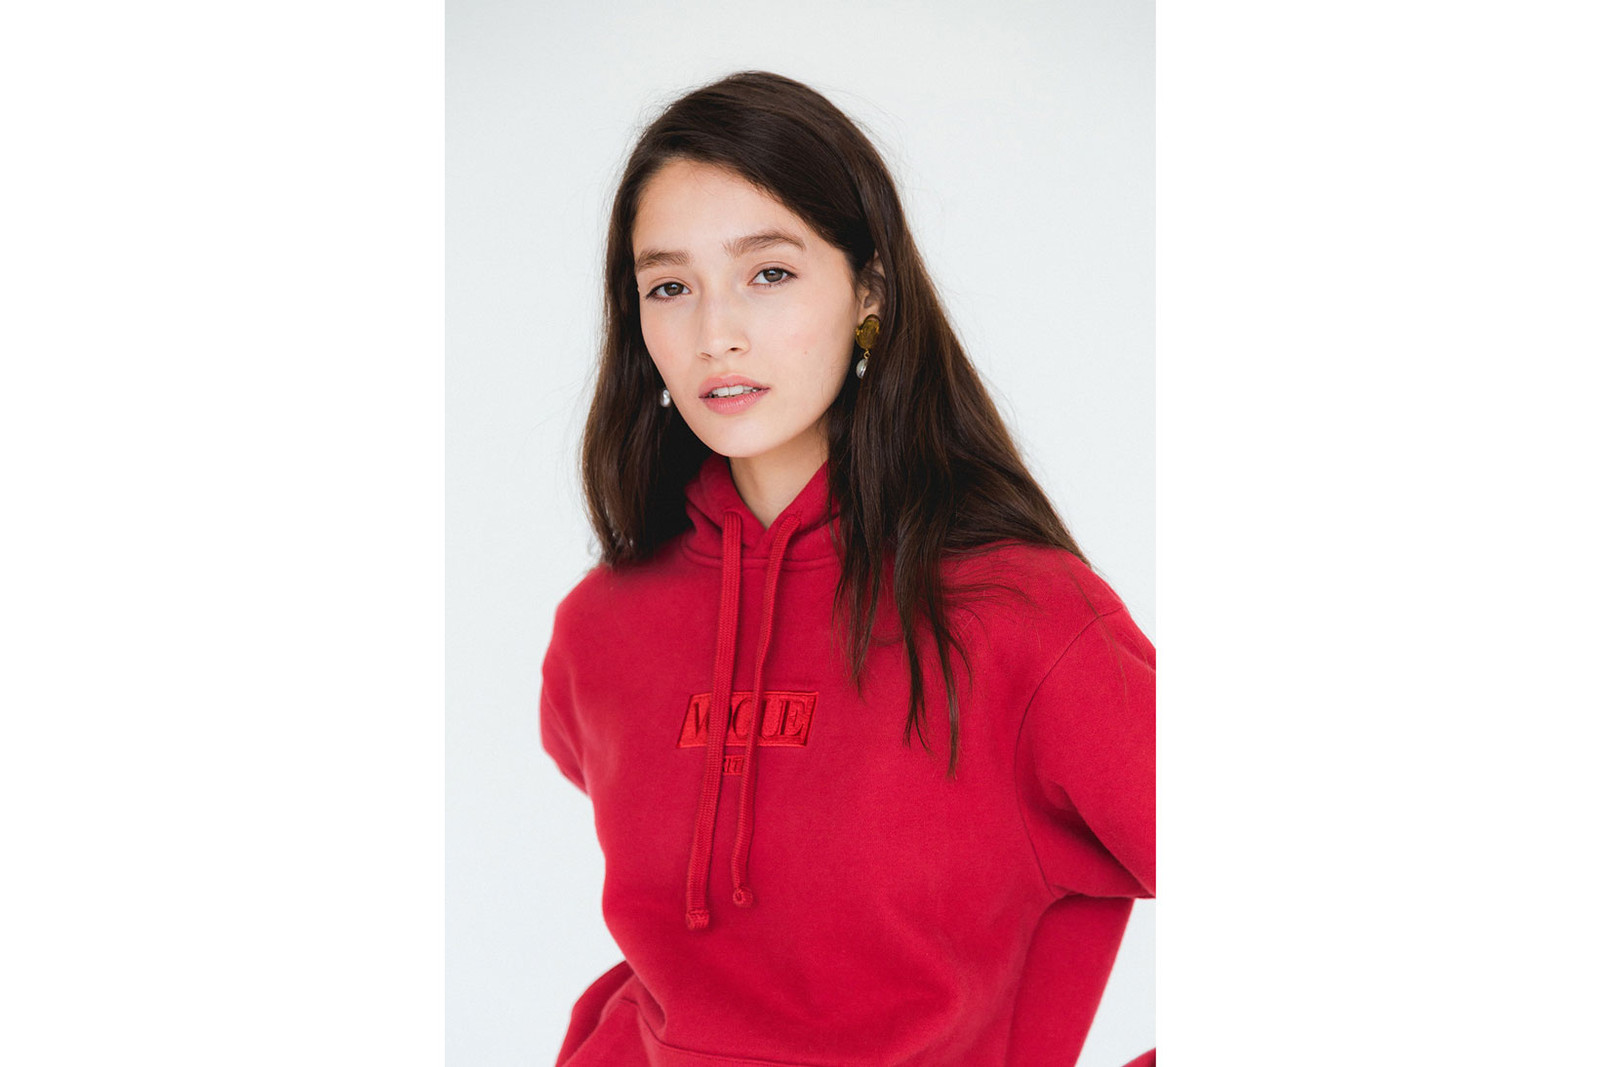 KITH Vogue Capsule Collection